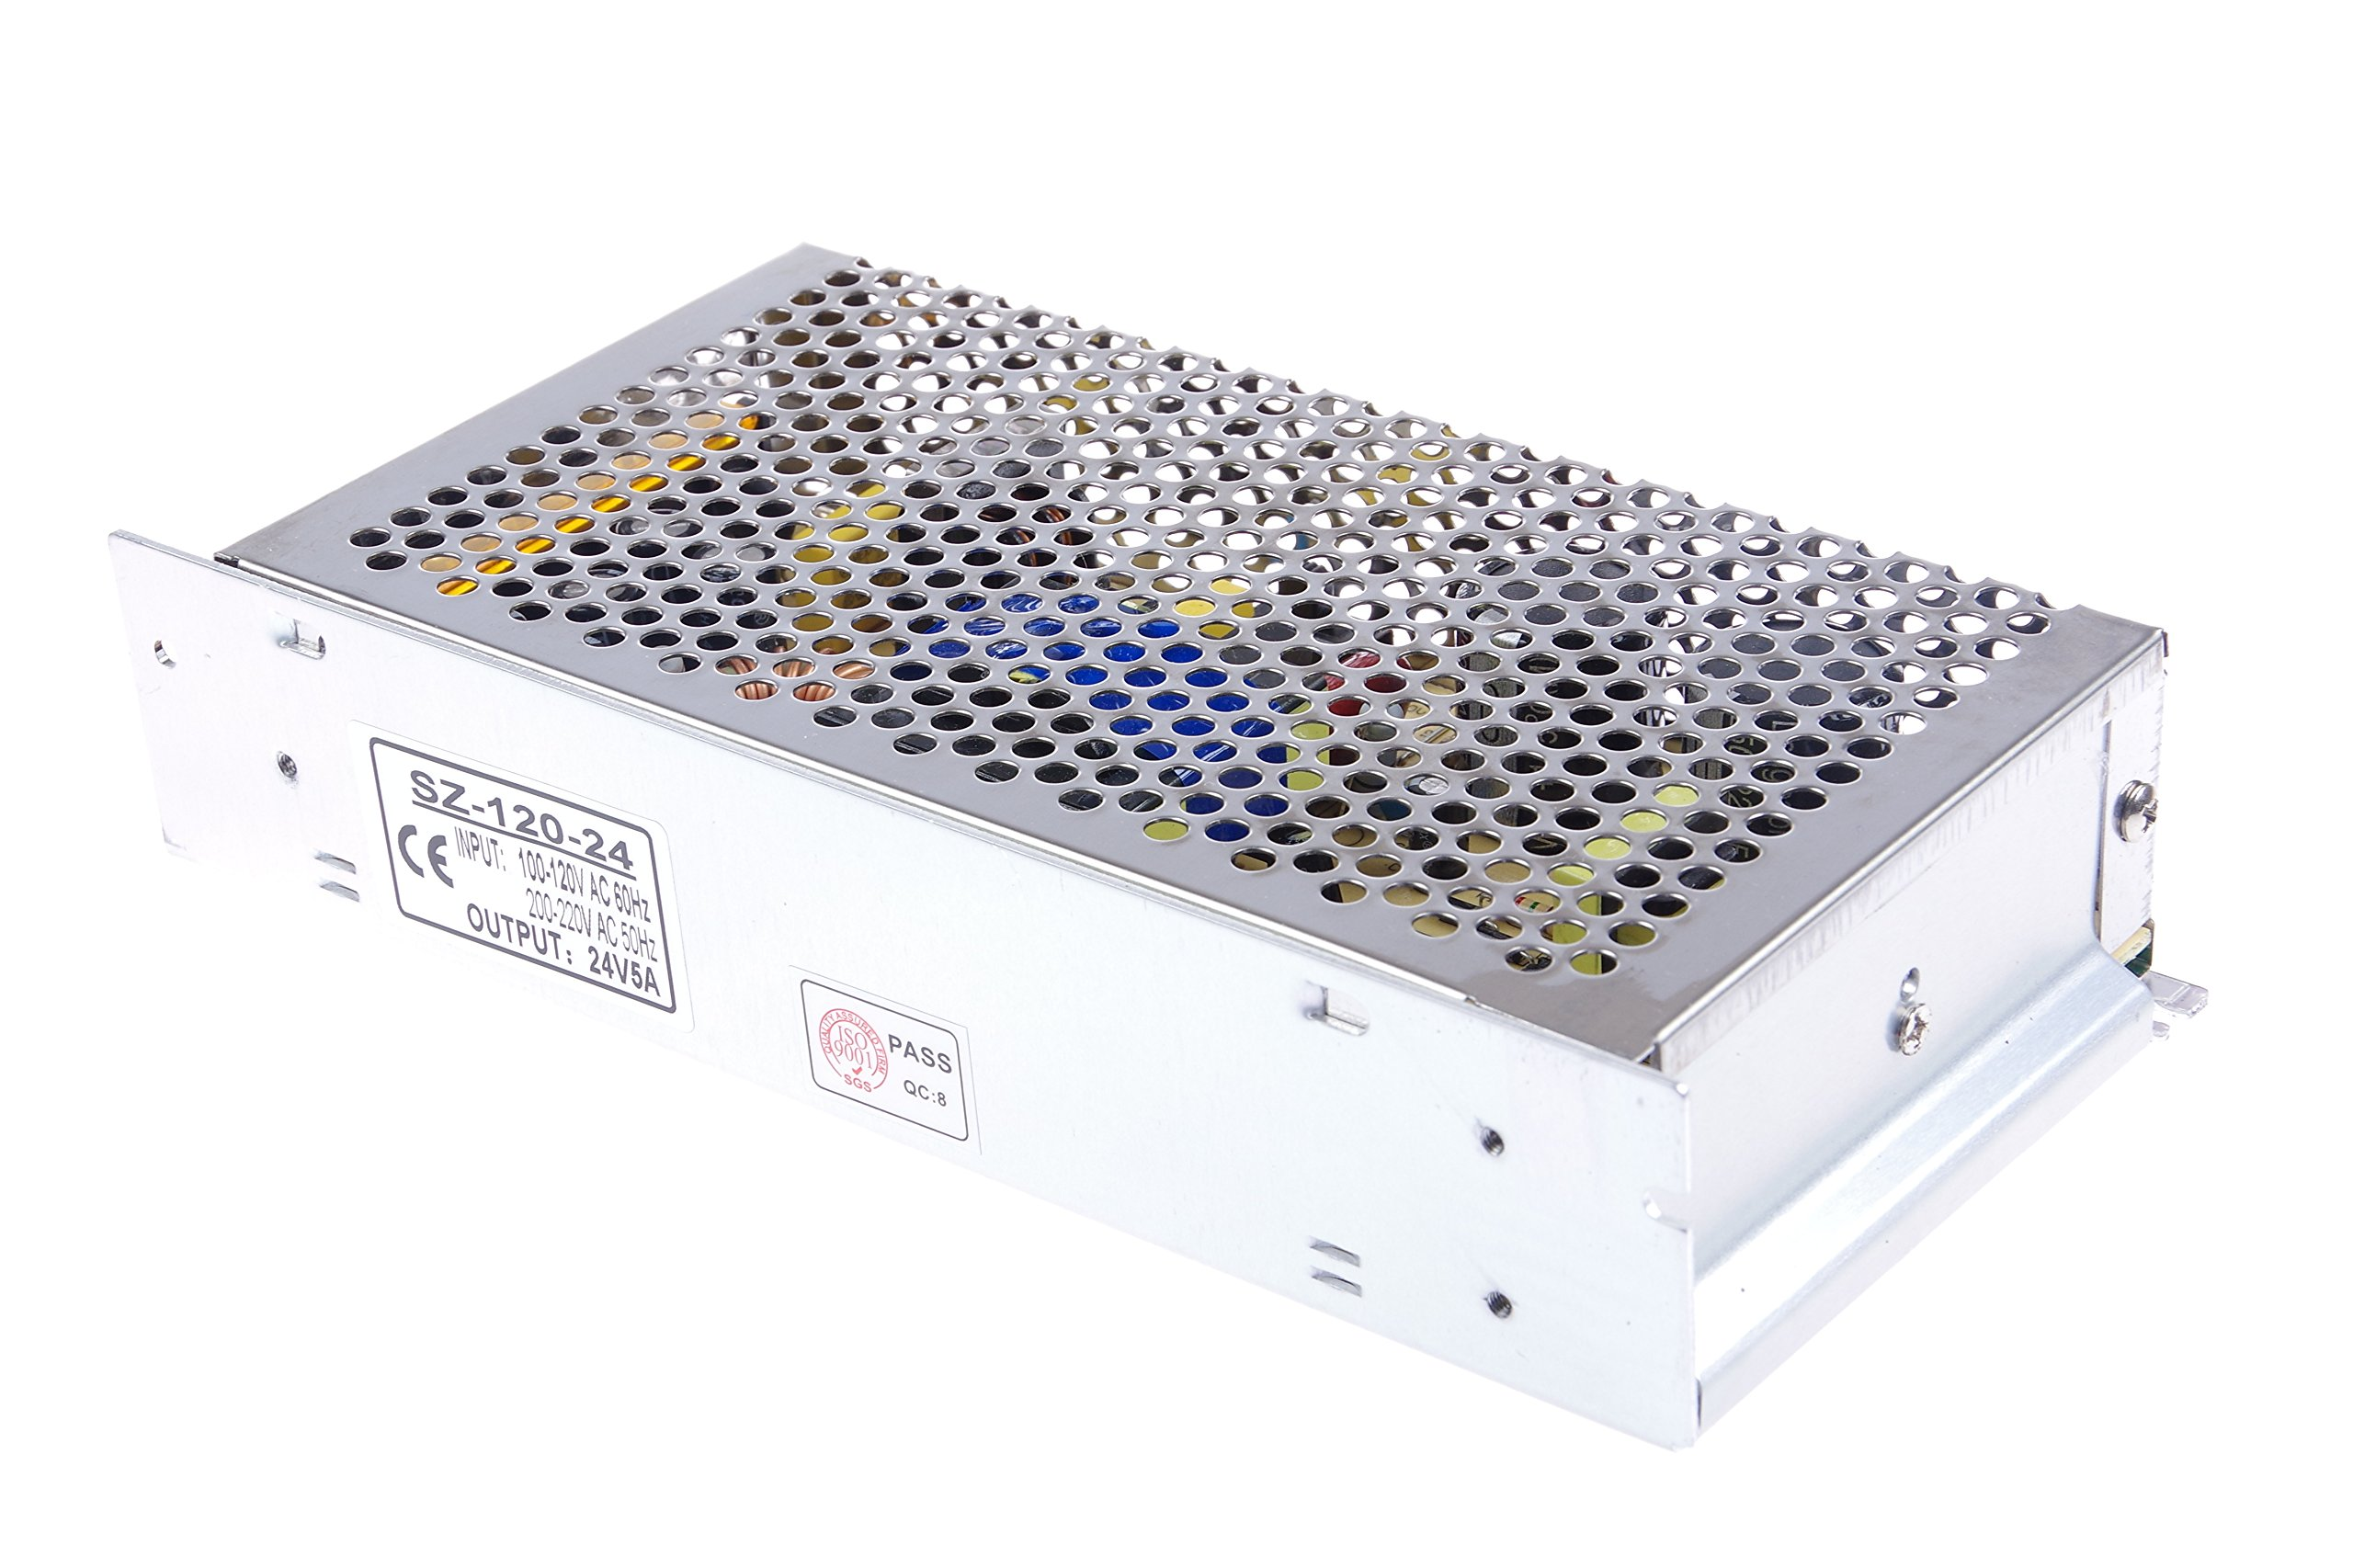 LM YN 110V/220V AC to DC 24V 5A 120W Switching Power Supply Driver,Power Transformer for CCTV camera, Security System, LED Strip Light, Radio, Computer Project by LM YN (Image #4)